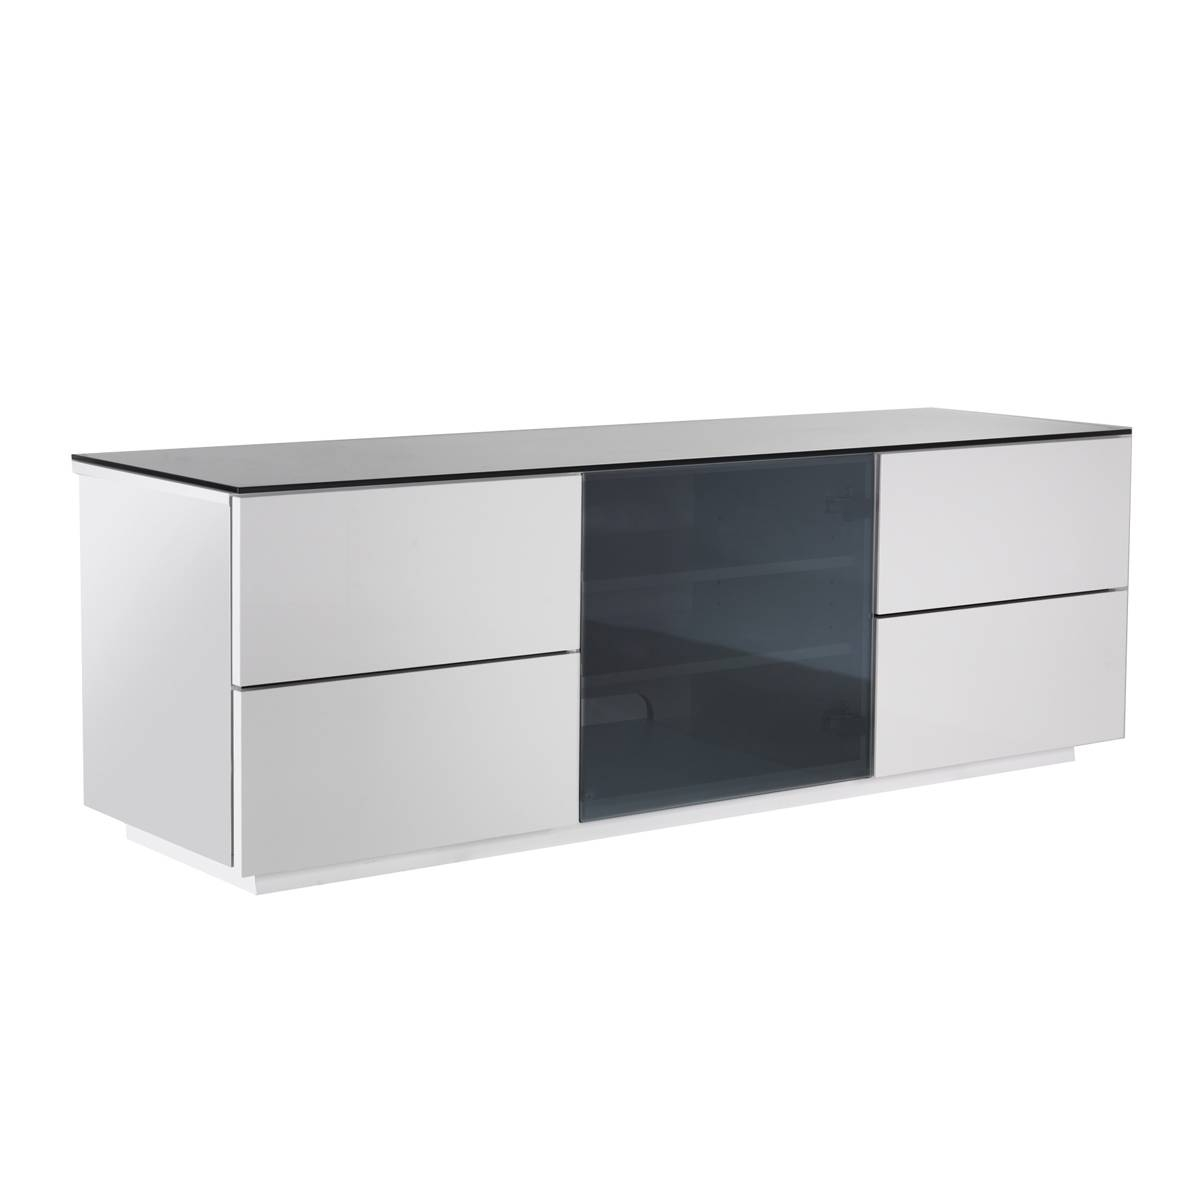 Ukcf London Designer High Gloss White Tv Stand With Black Glass with 150Cm Tv Unit (Image 10 of 15)